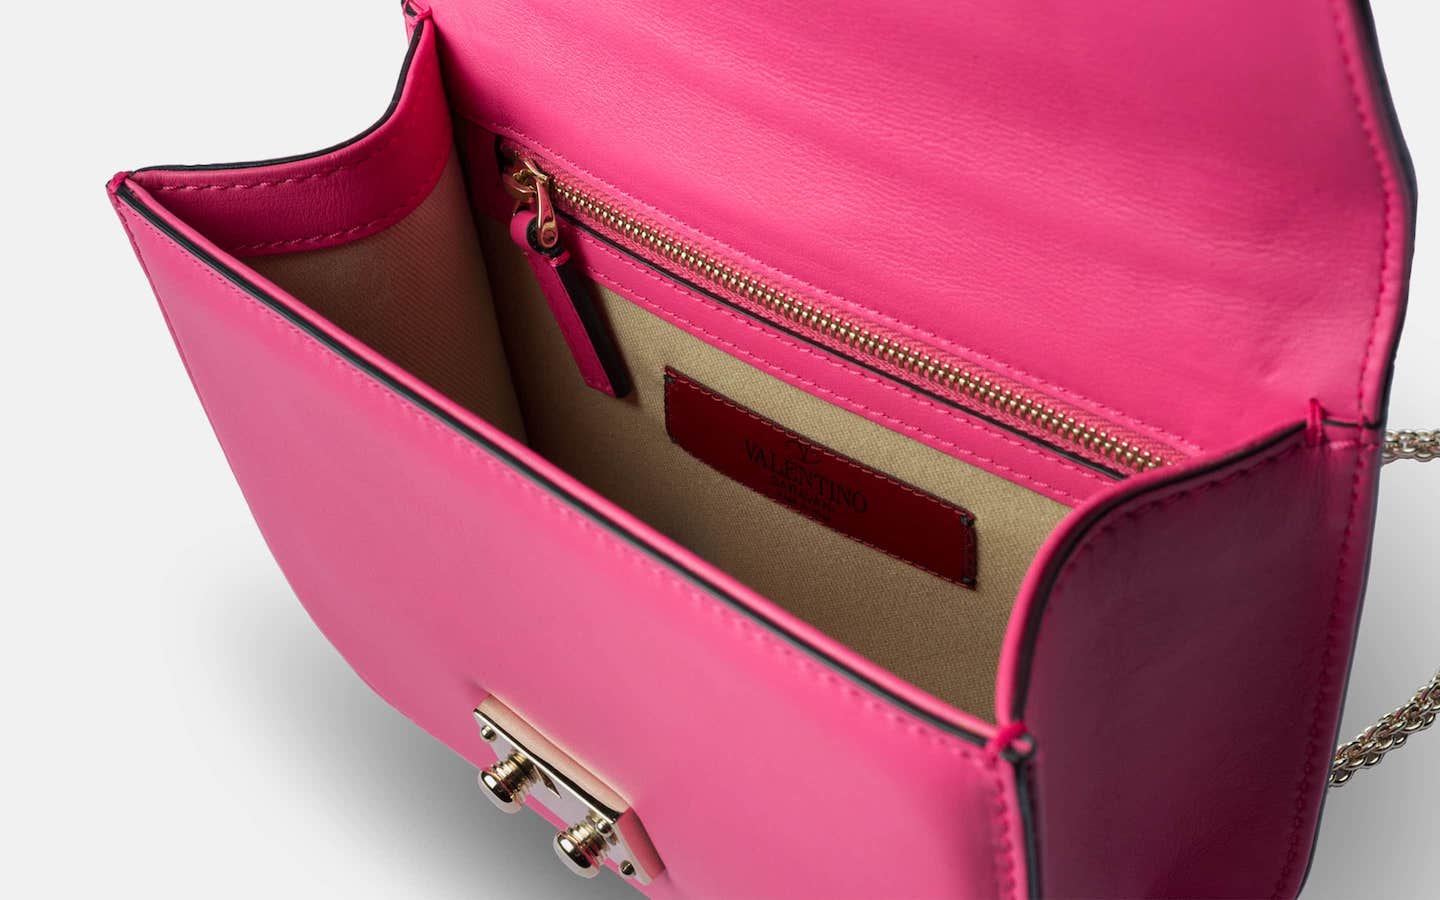 Valentino_Lock_Mini_Crossbody_Pink_Shoulder_Bag_Perspective-min